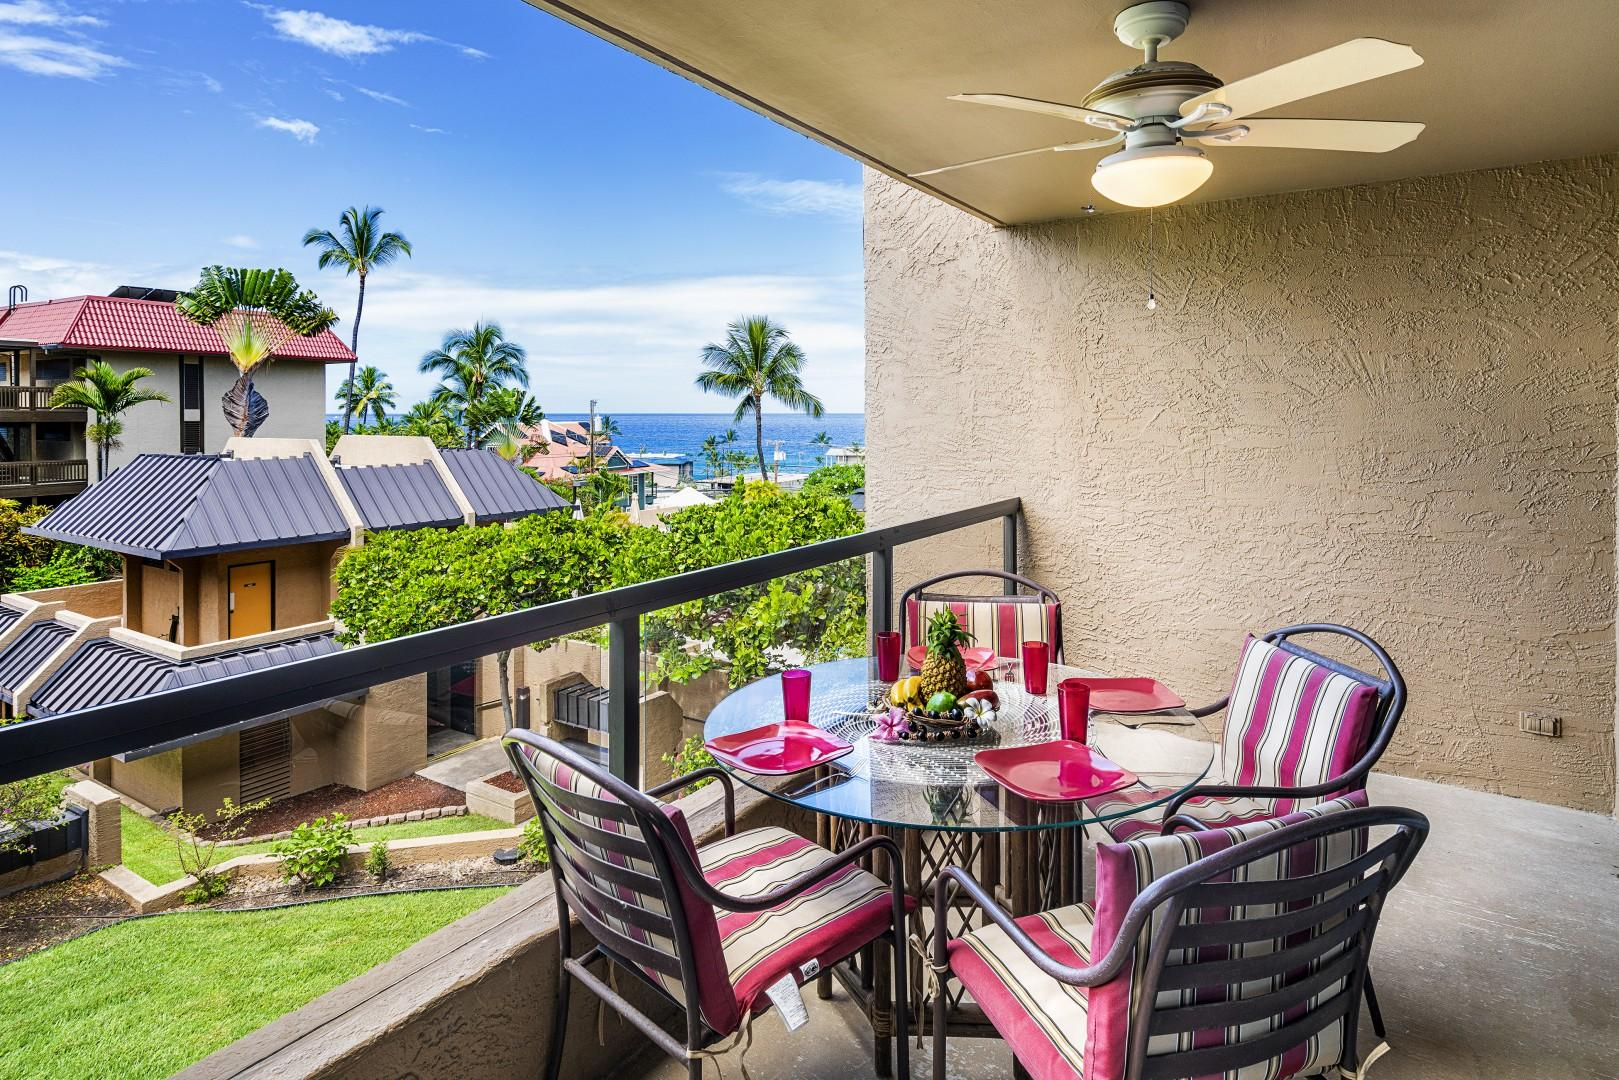 Additionally outdoor Lanai dining